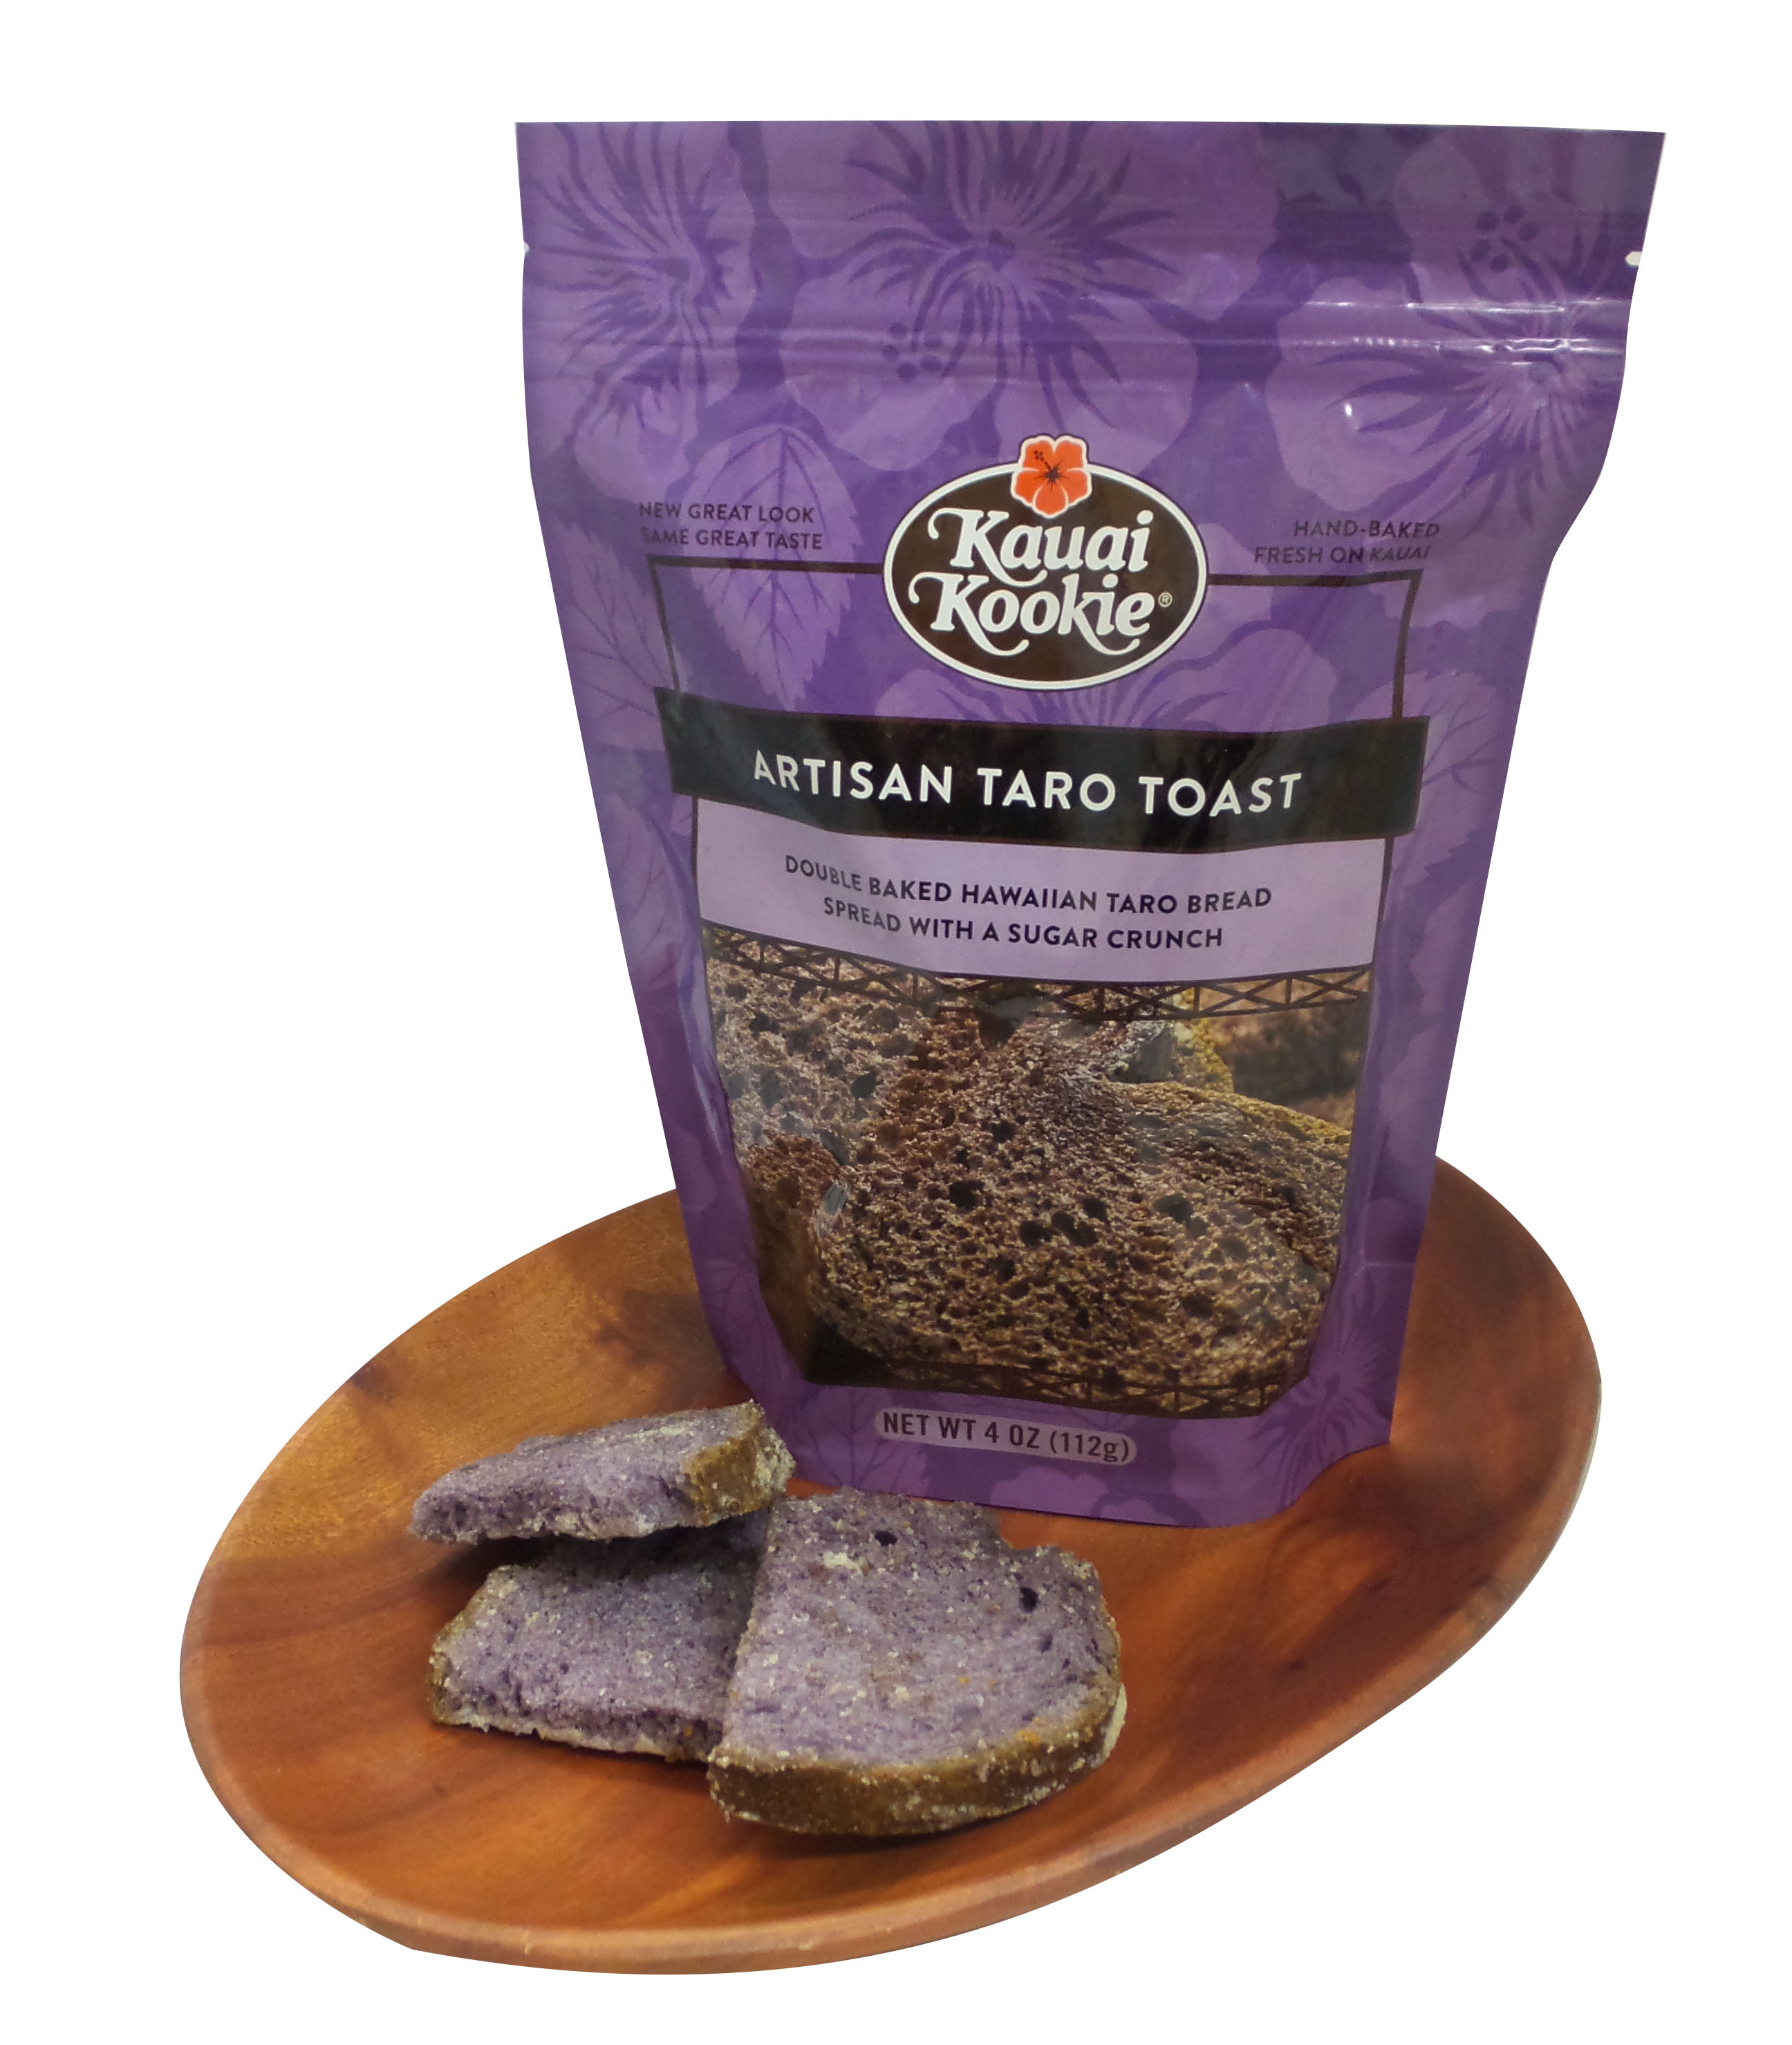 Handcrafted Double Baked Artisan Taro Toast 4 oz